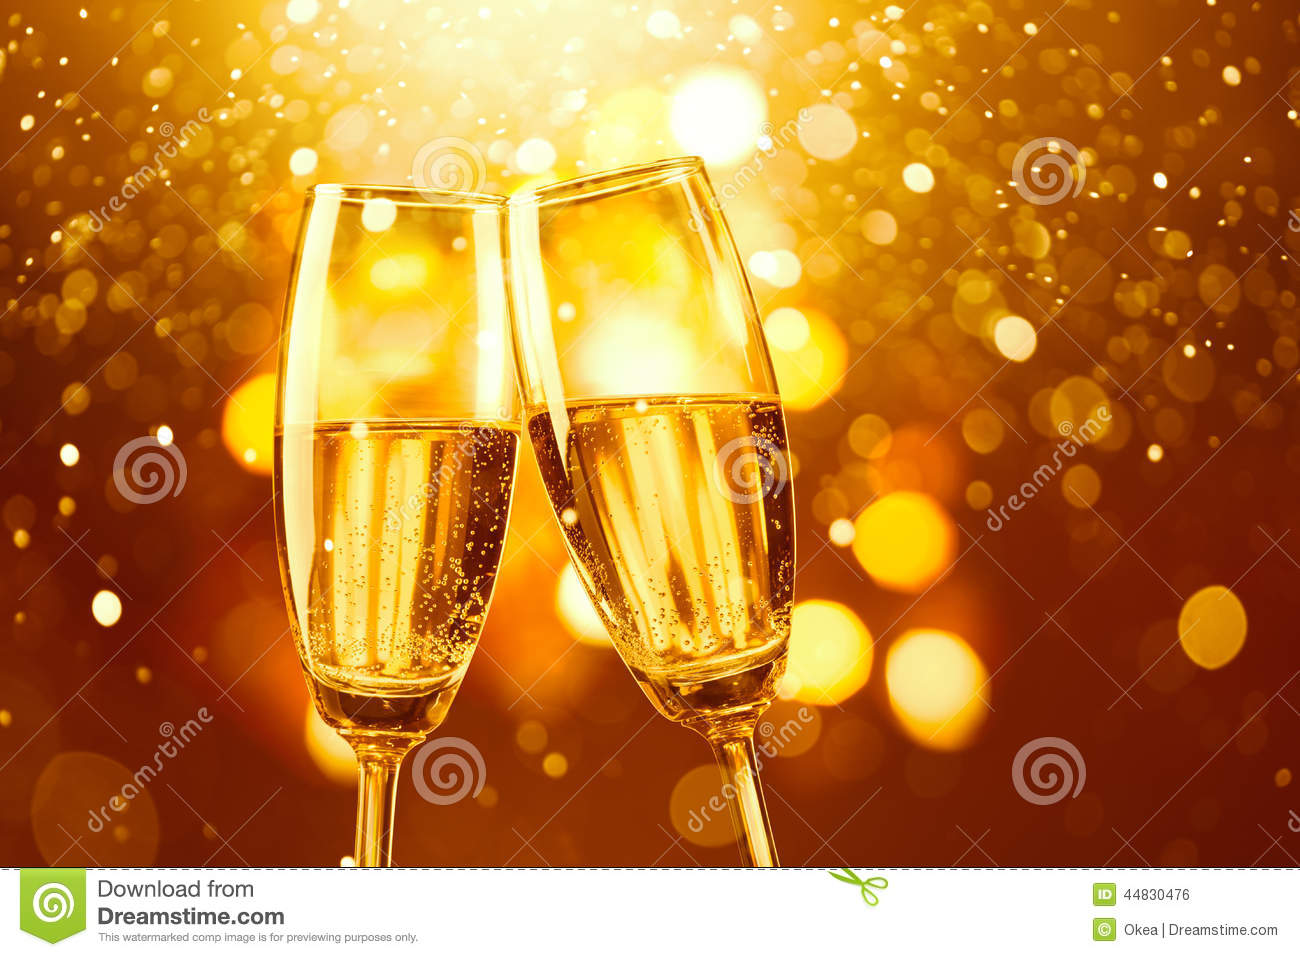 Two glasses of champagne toasting against gold bokeh background.